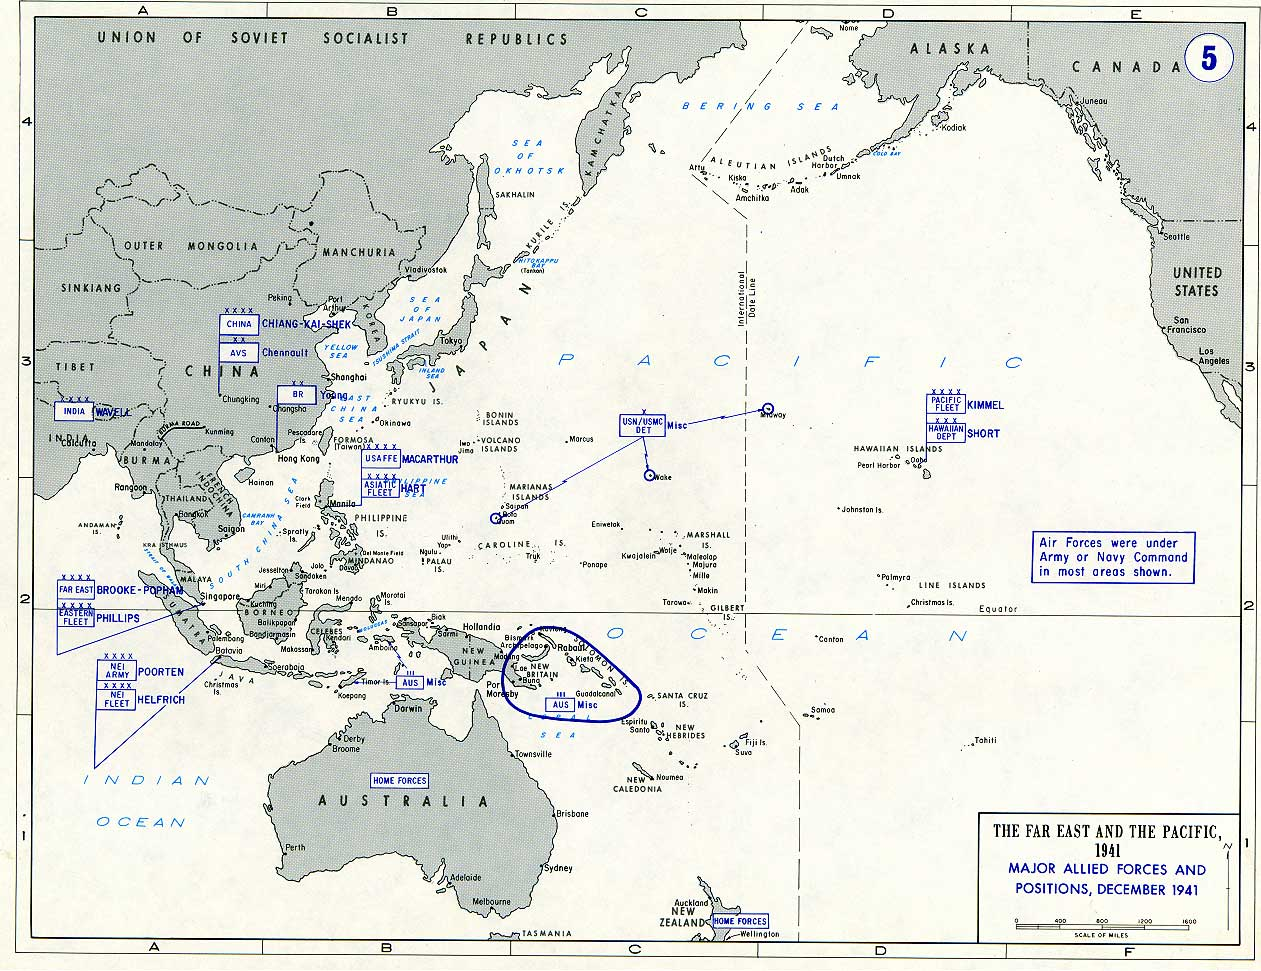 General Maps About The Far East And The Pacific During The